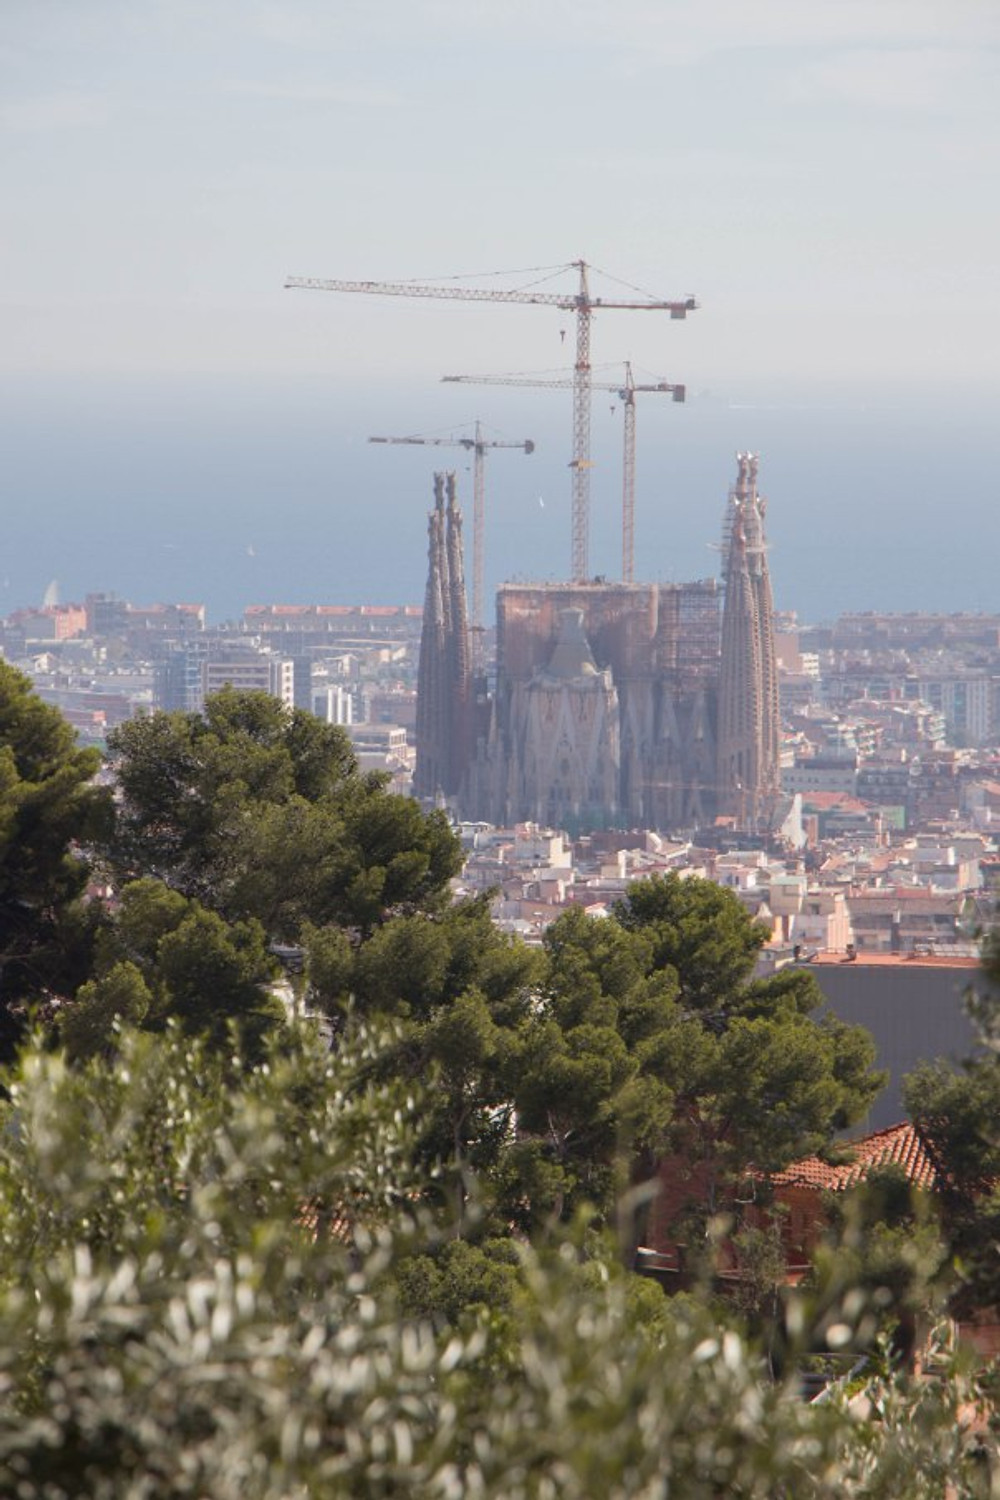 View of Sagrada Familia from the hilltop